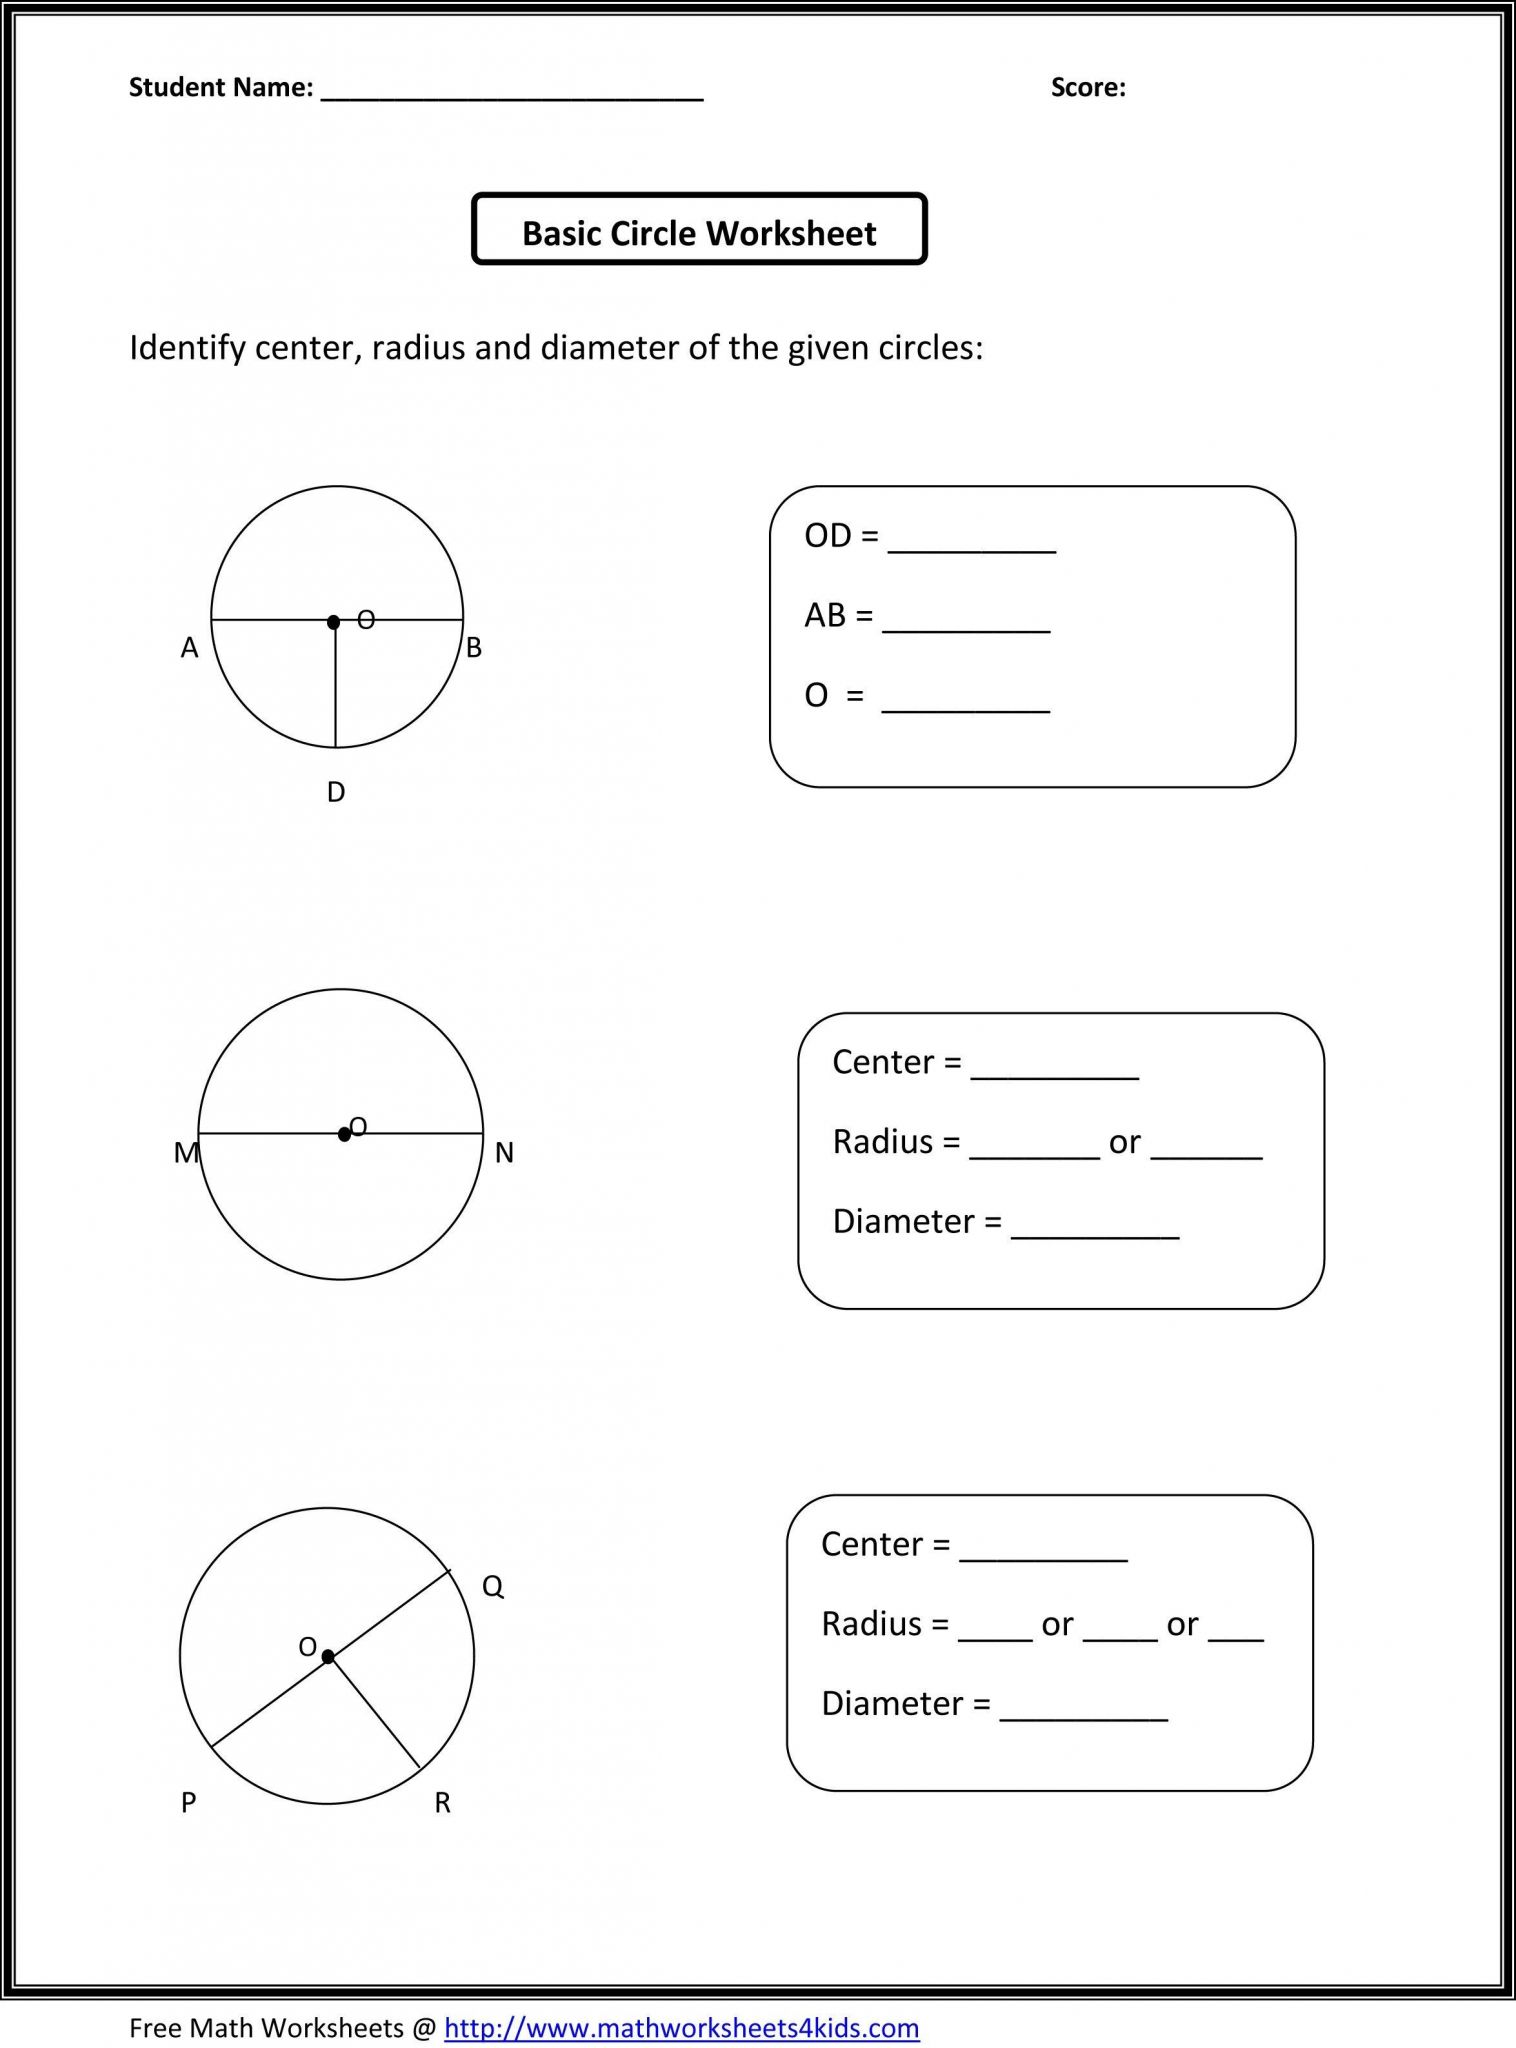 Naming Polyatomic Ions Worksheet